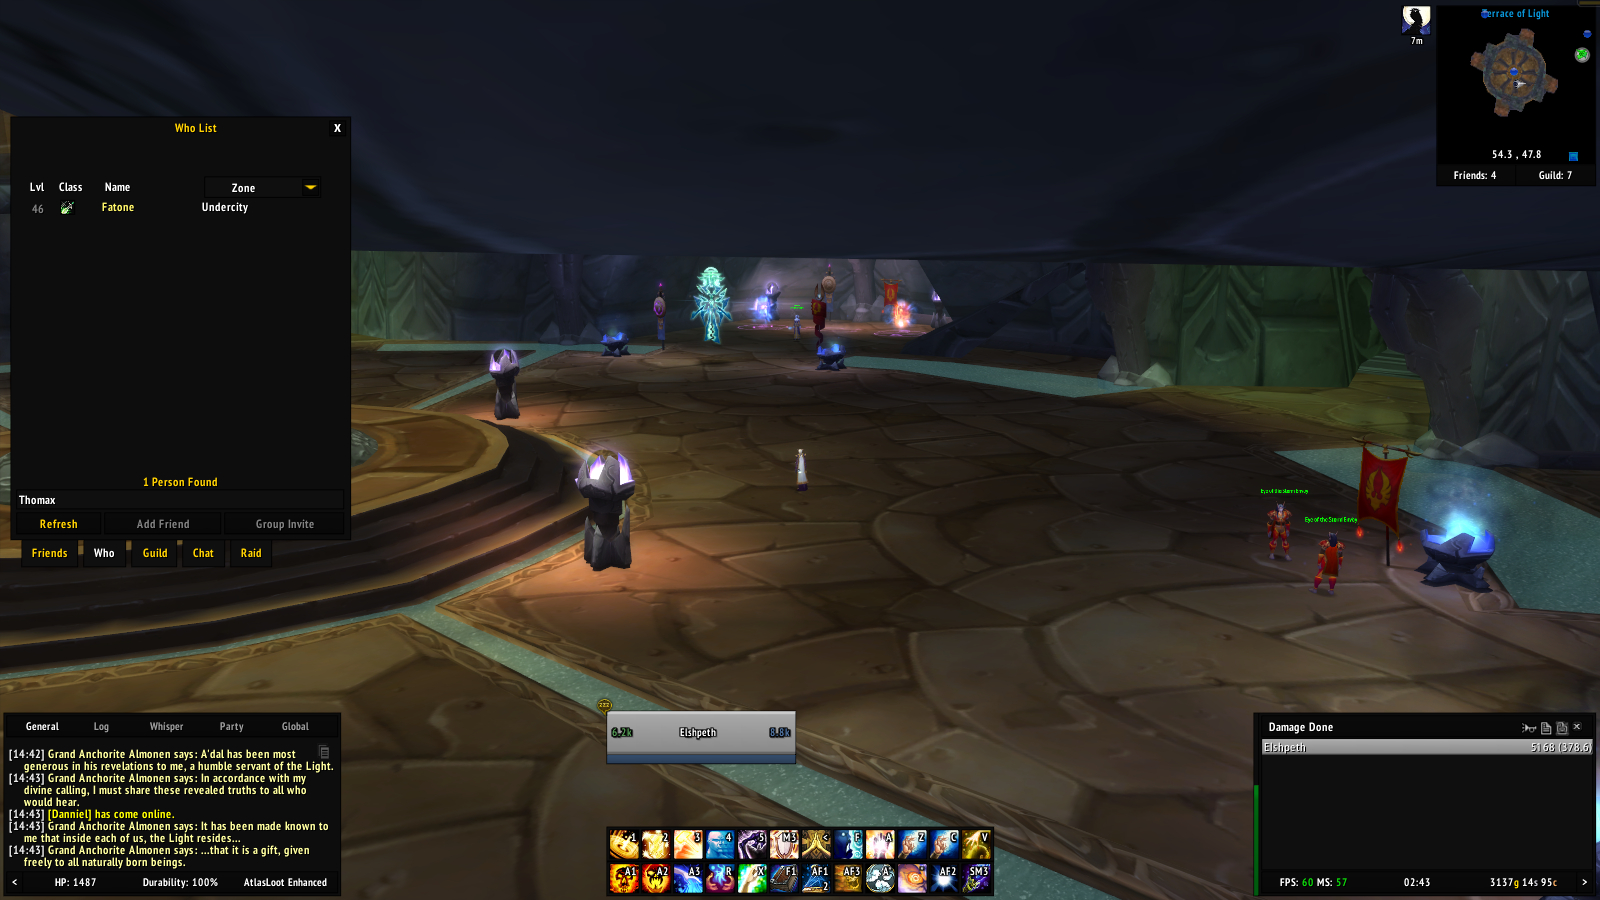 who command is not working · Issue #273 · ElvUI-TBC/ElvUI